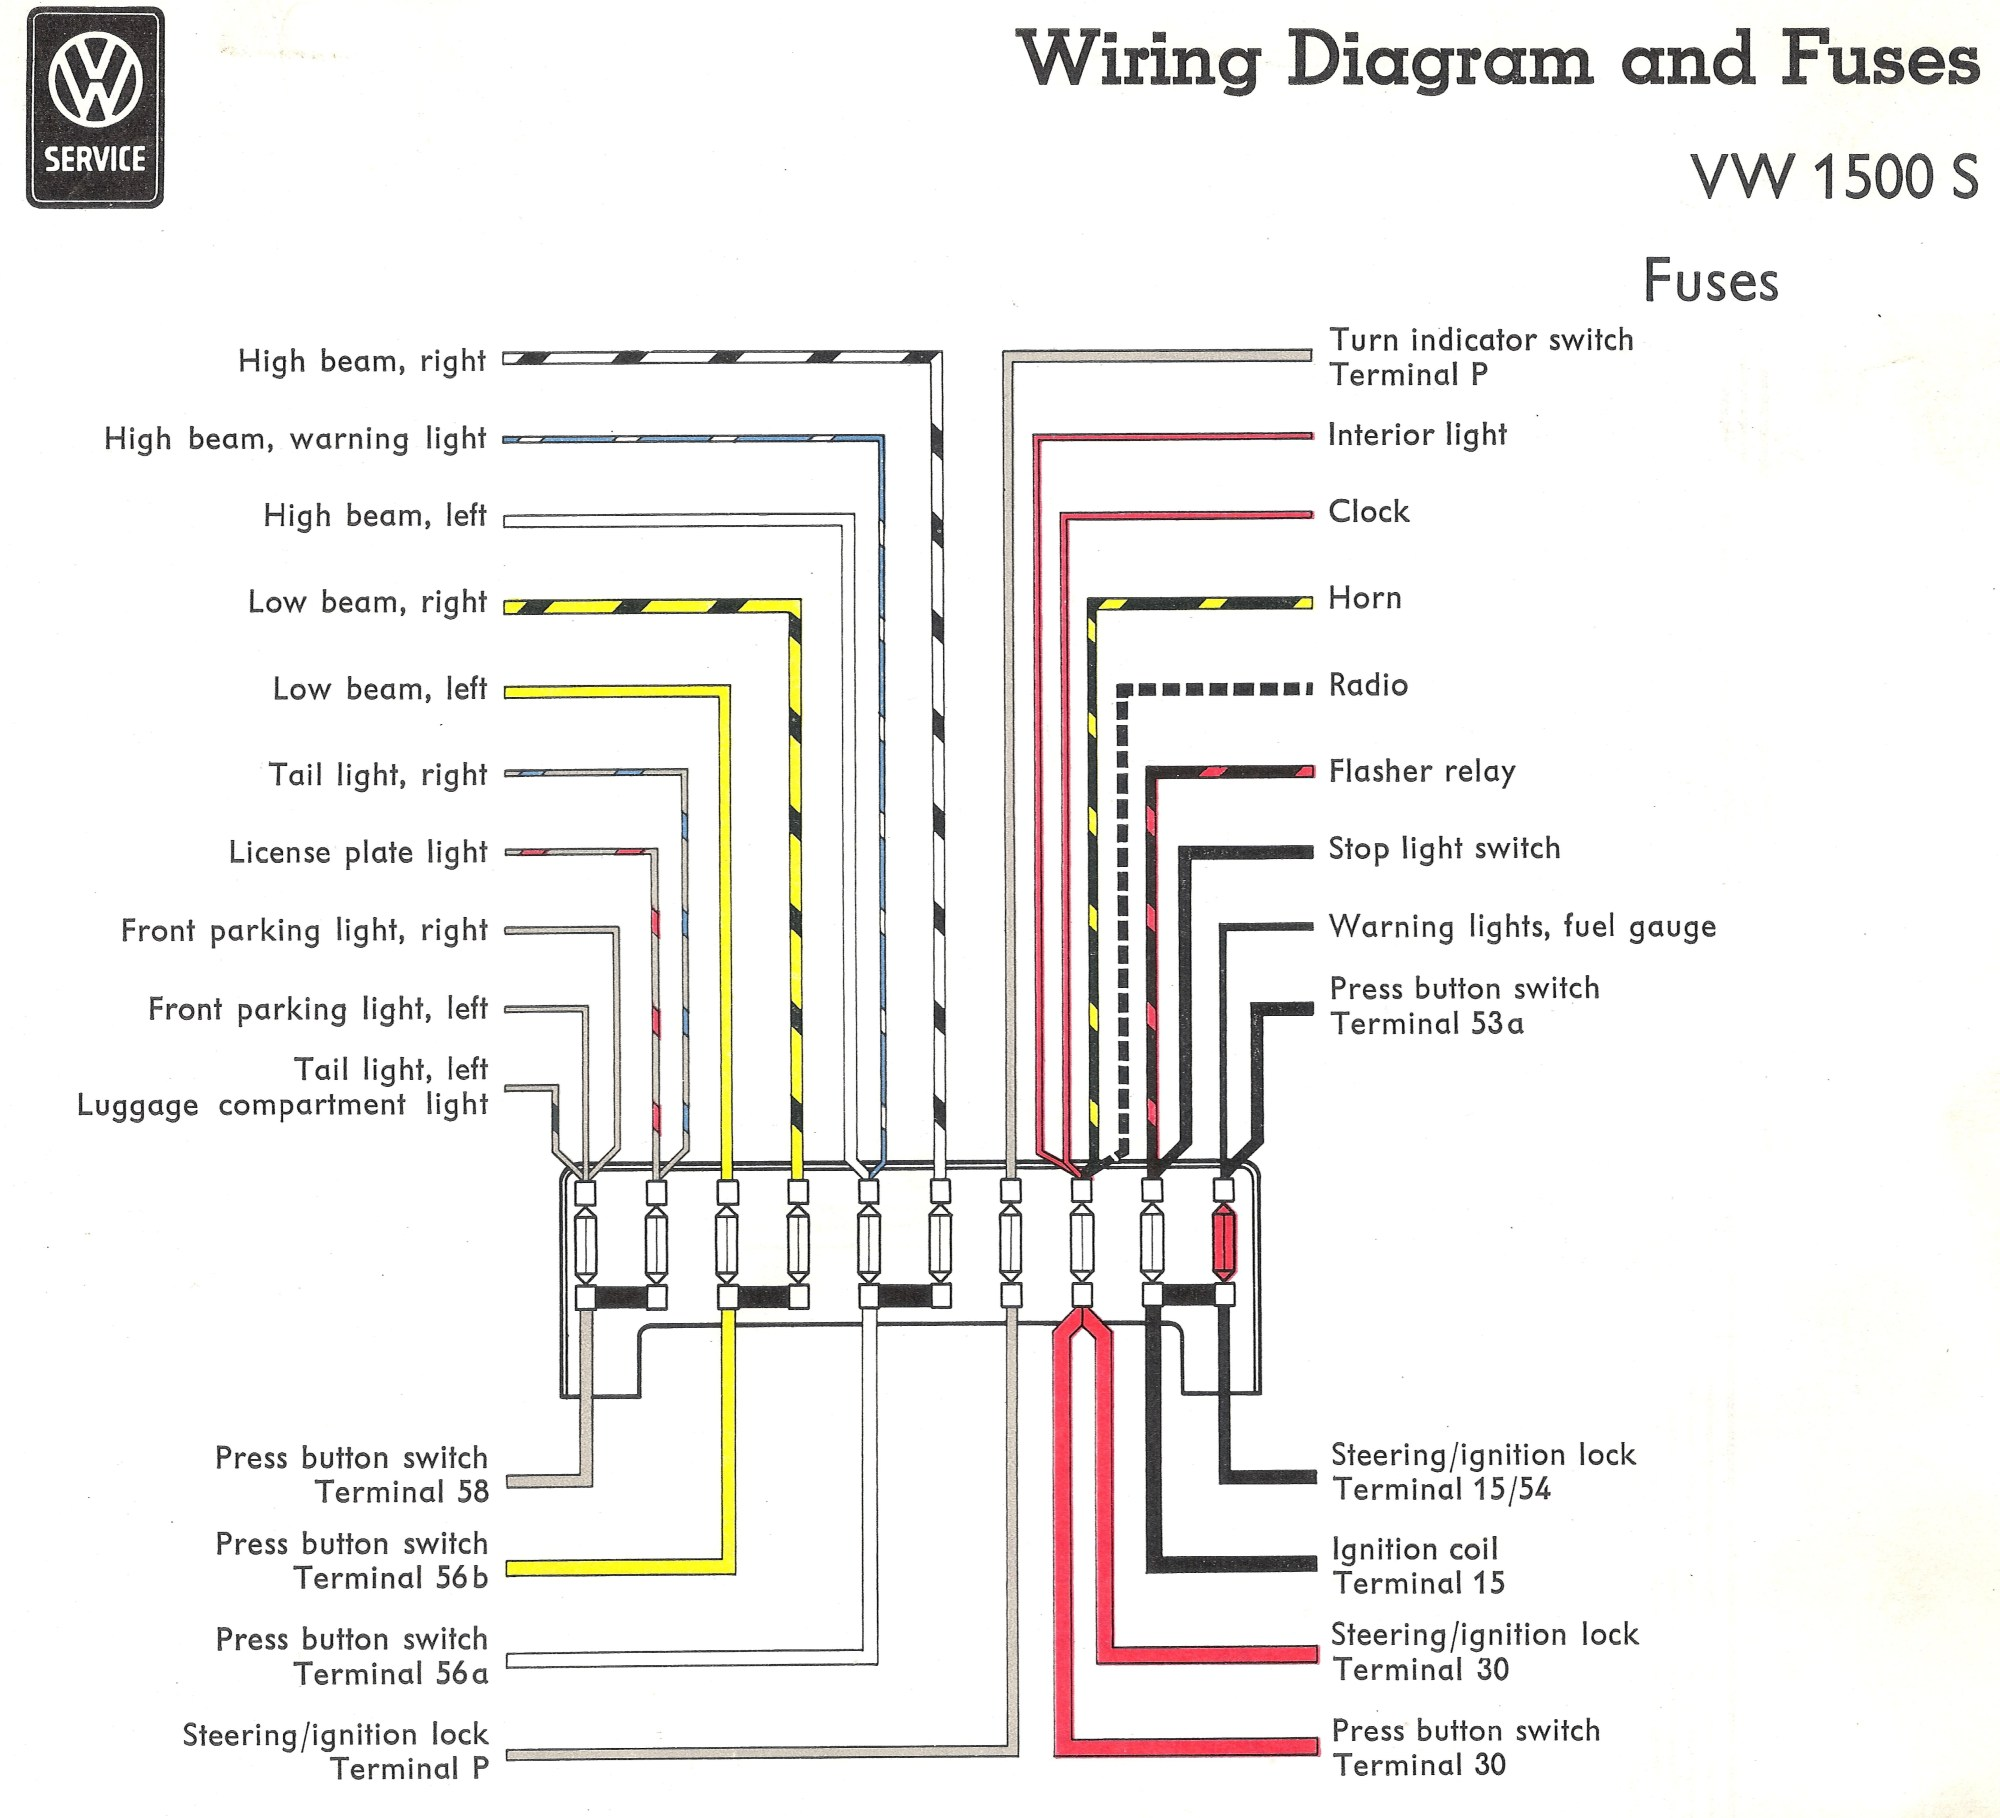 hight resolution of 1970 vw fuse box diagram trusted wiring diagrams u2022 passat fuse diagram 1970 vw fuse